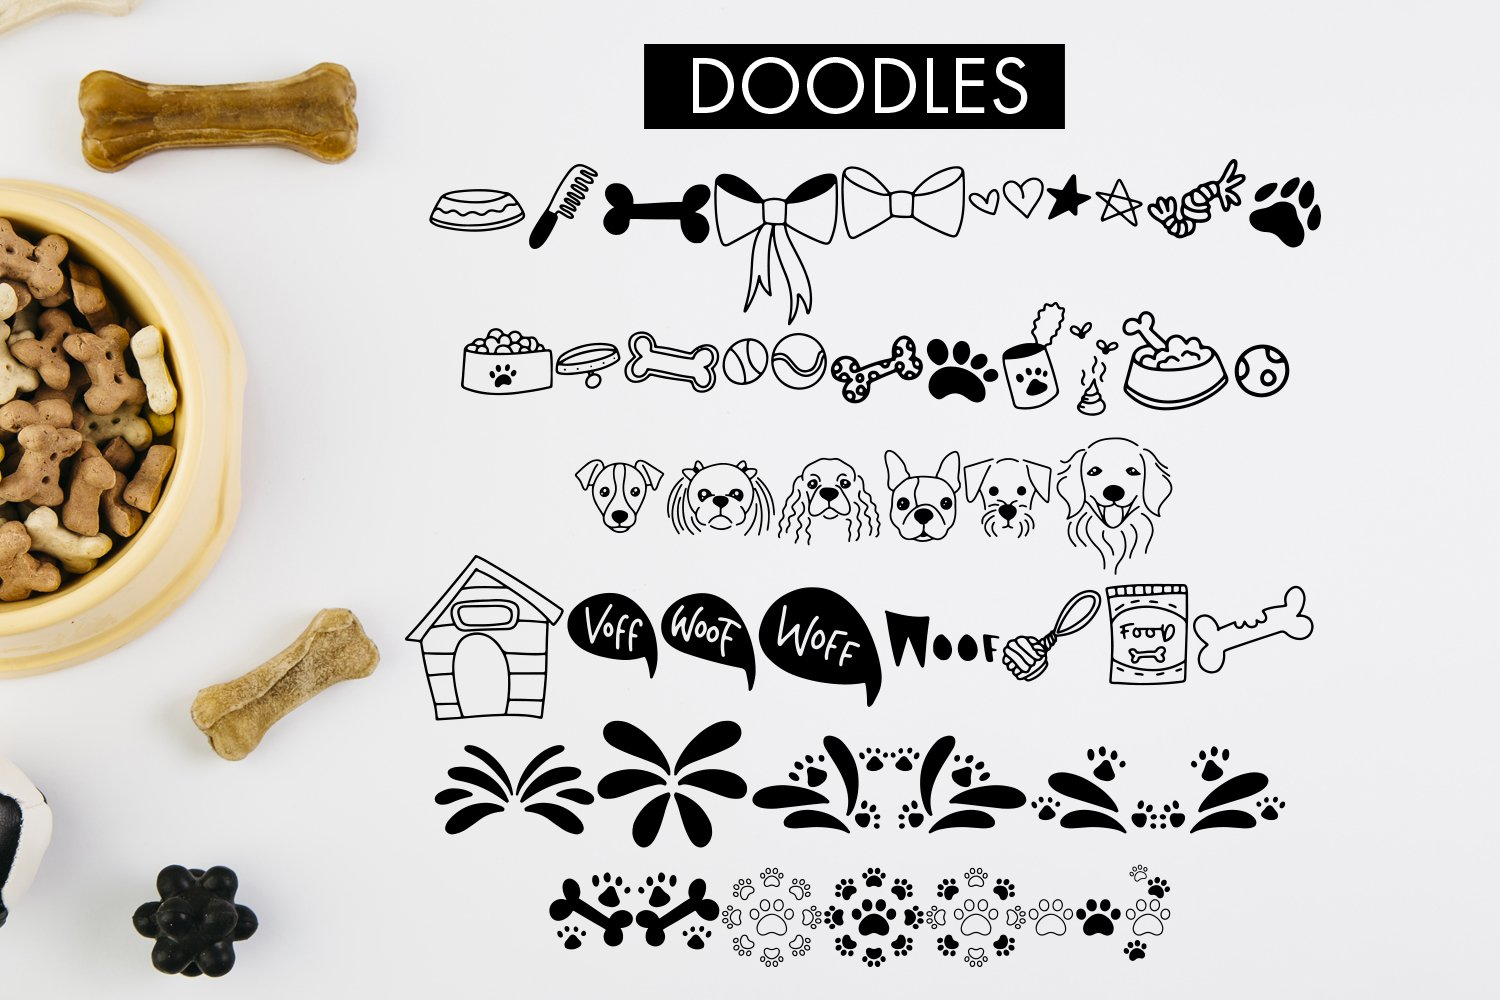 Dolores The Schnauzer - Different Designs With Bonus Doodles example image 7